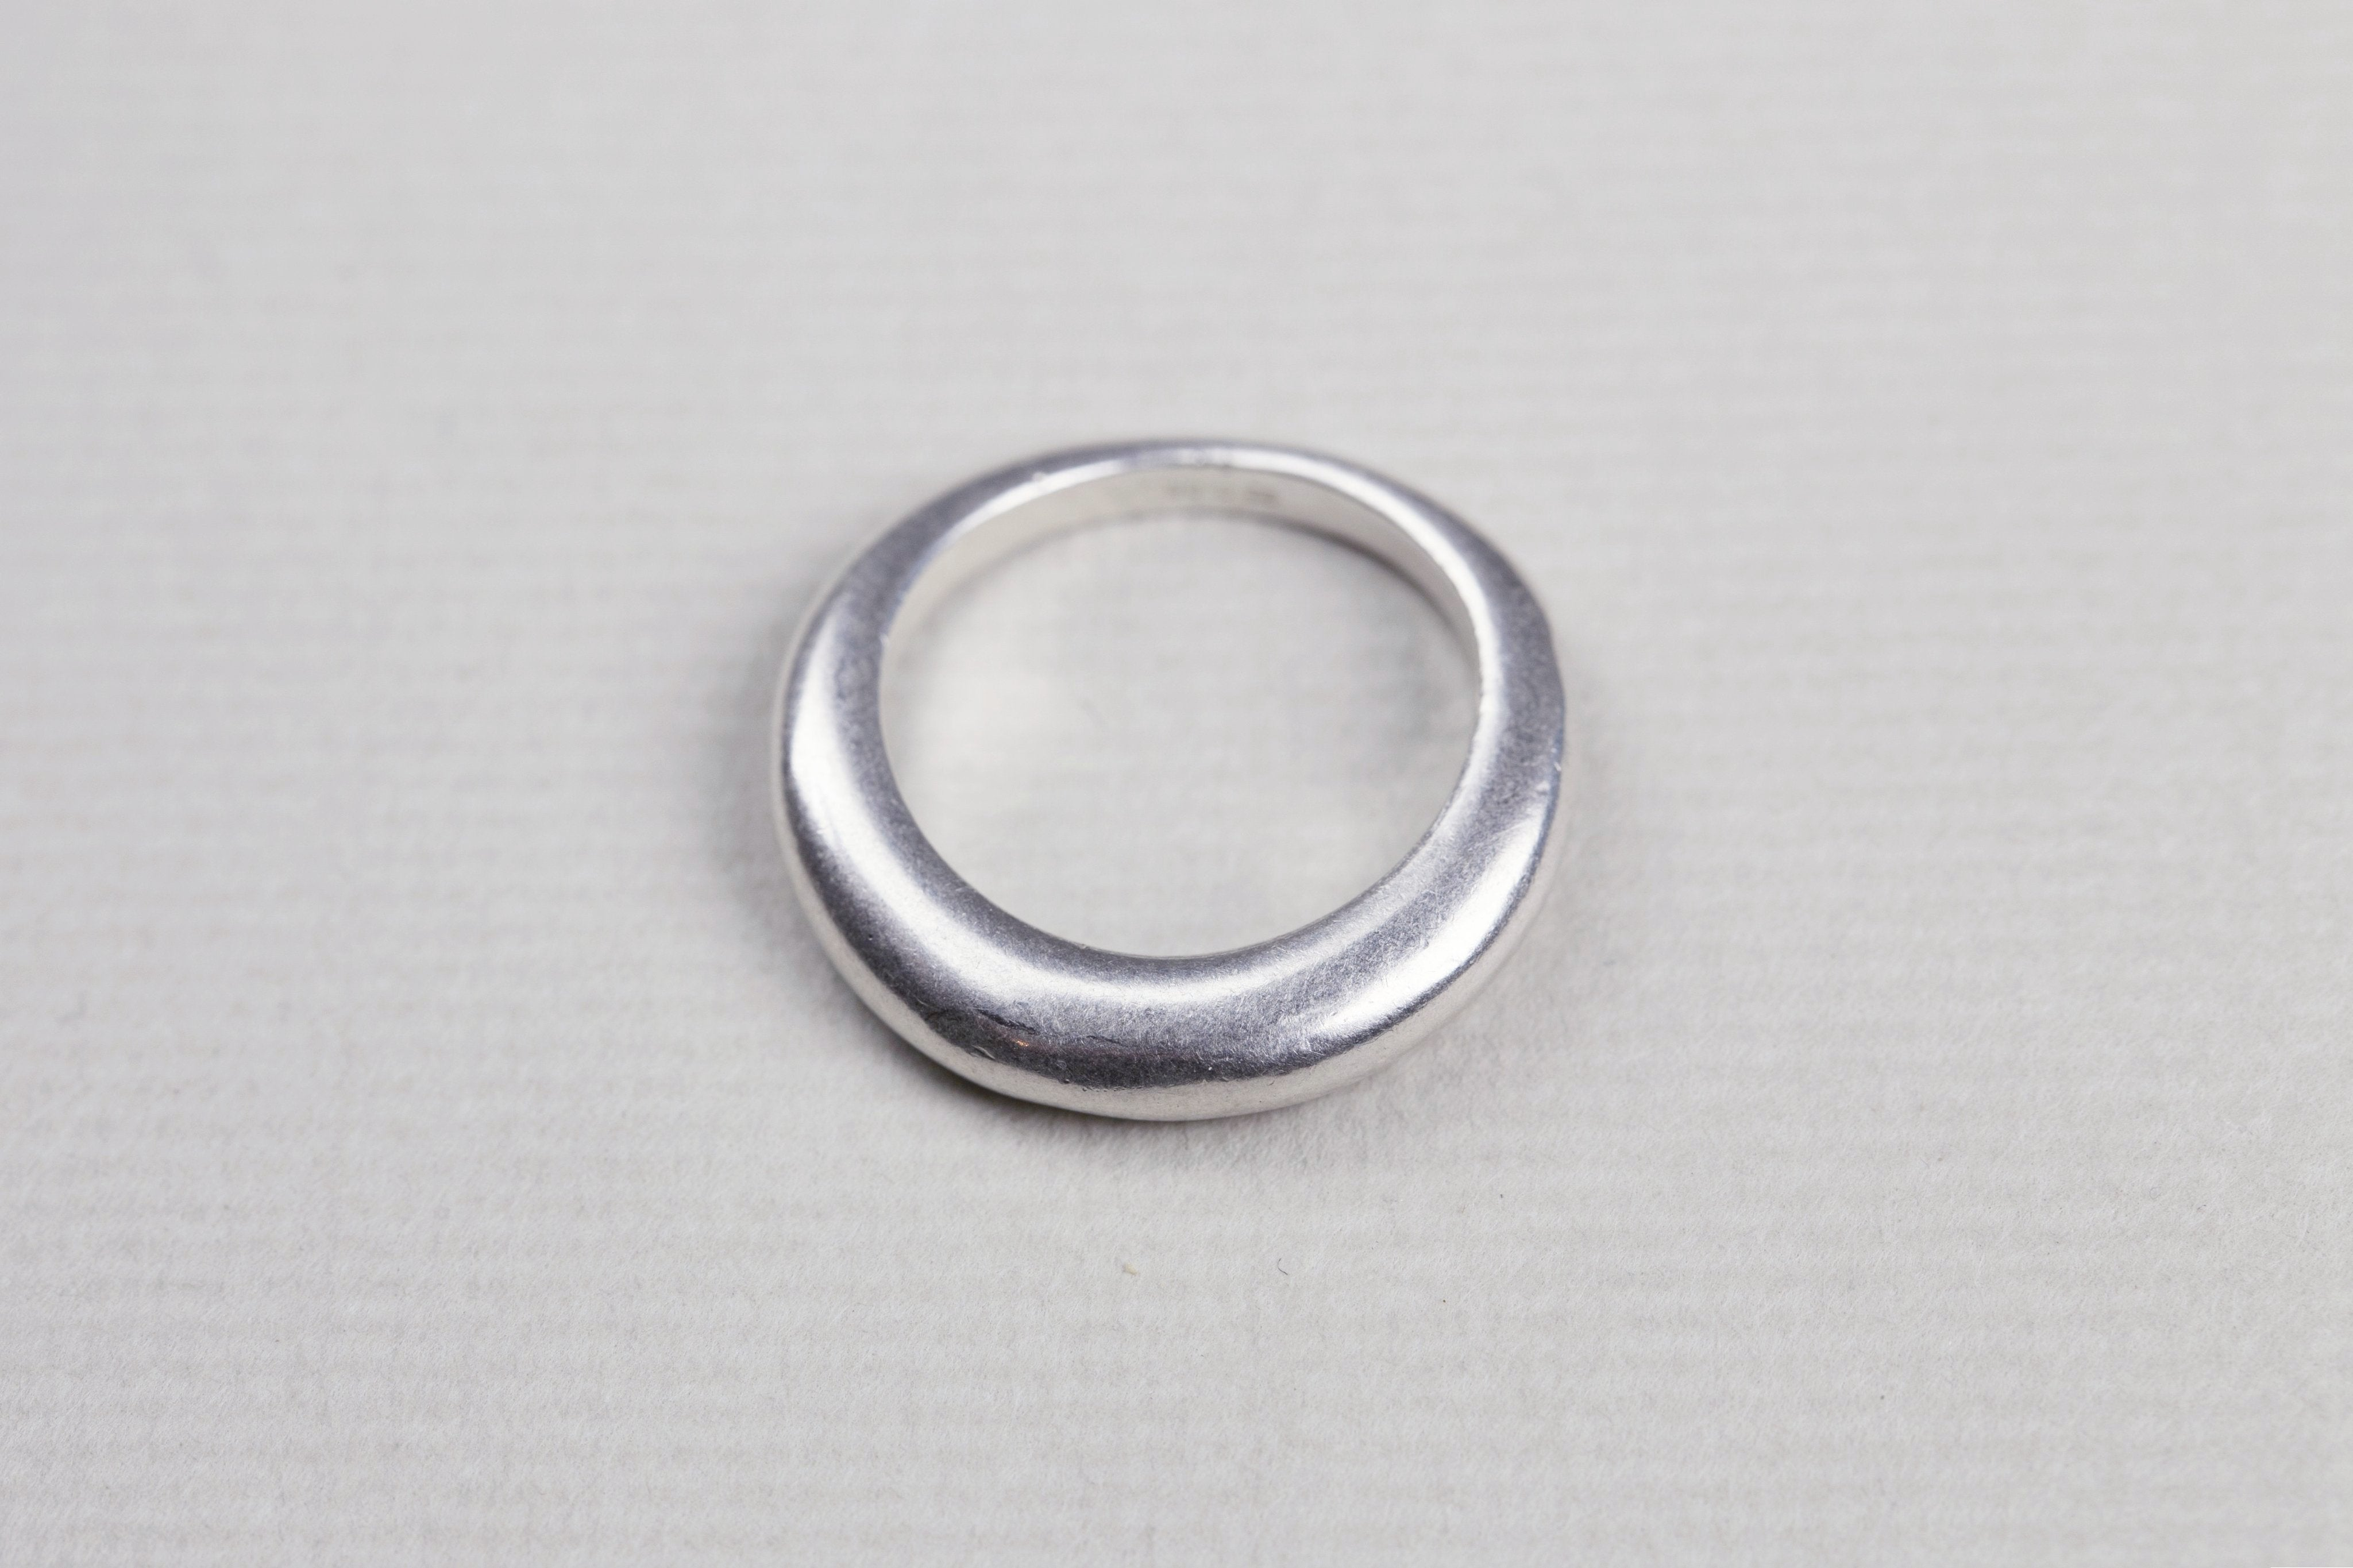 Vintage Chanel Silver Ring